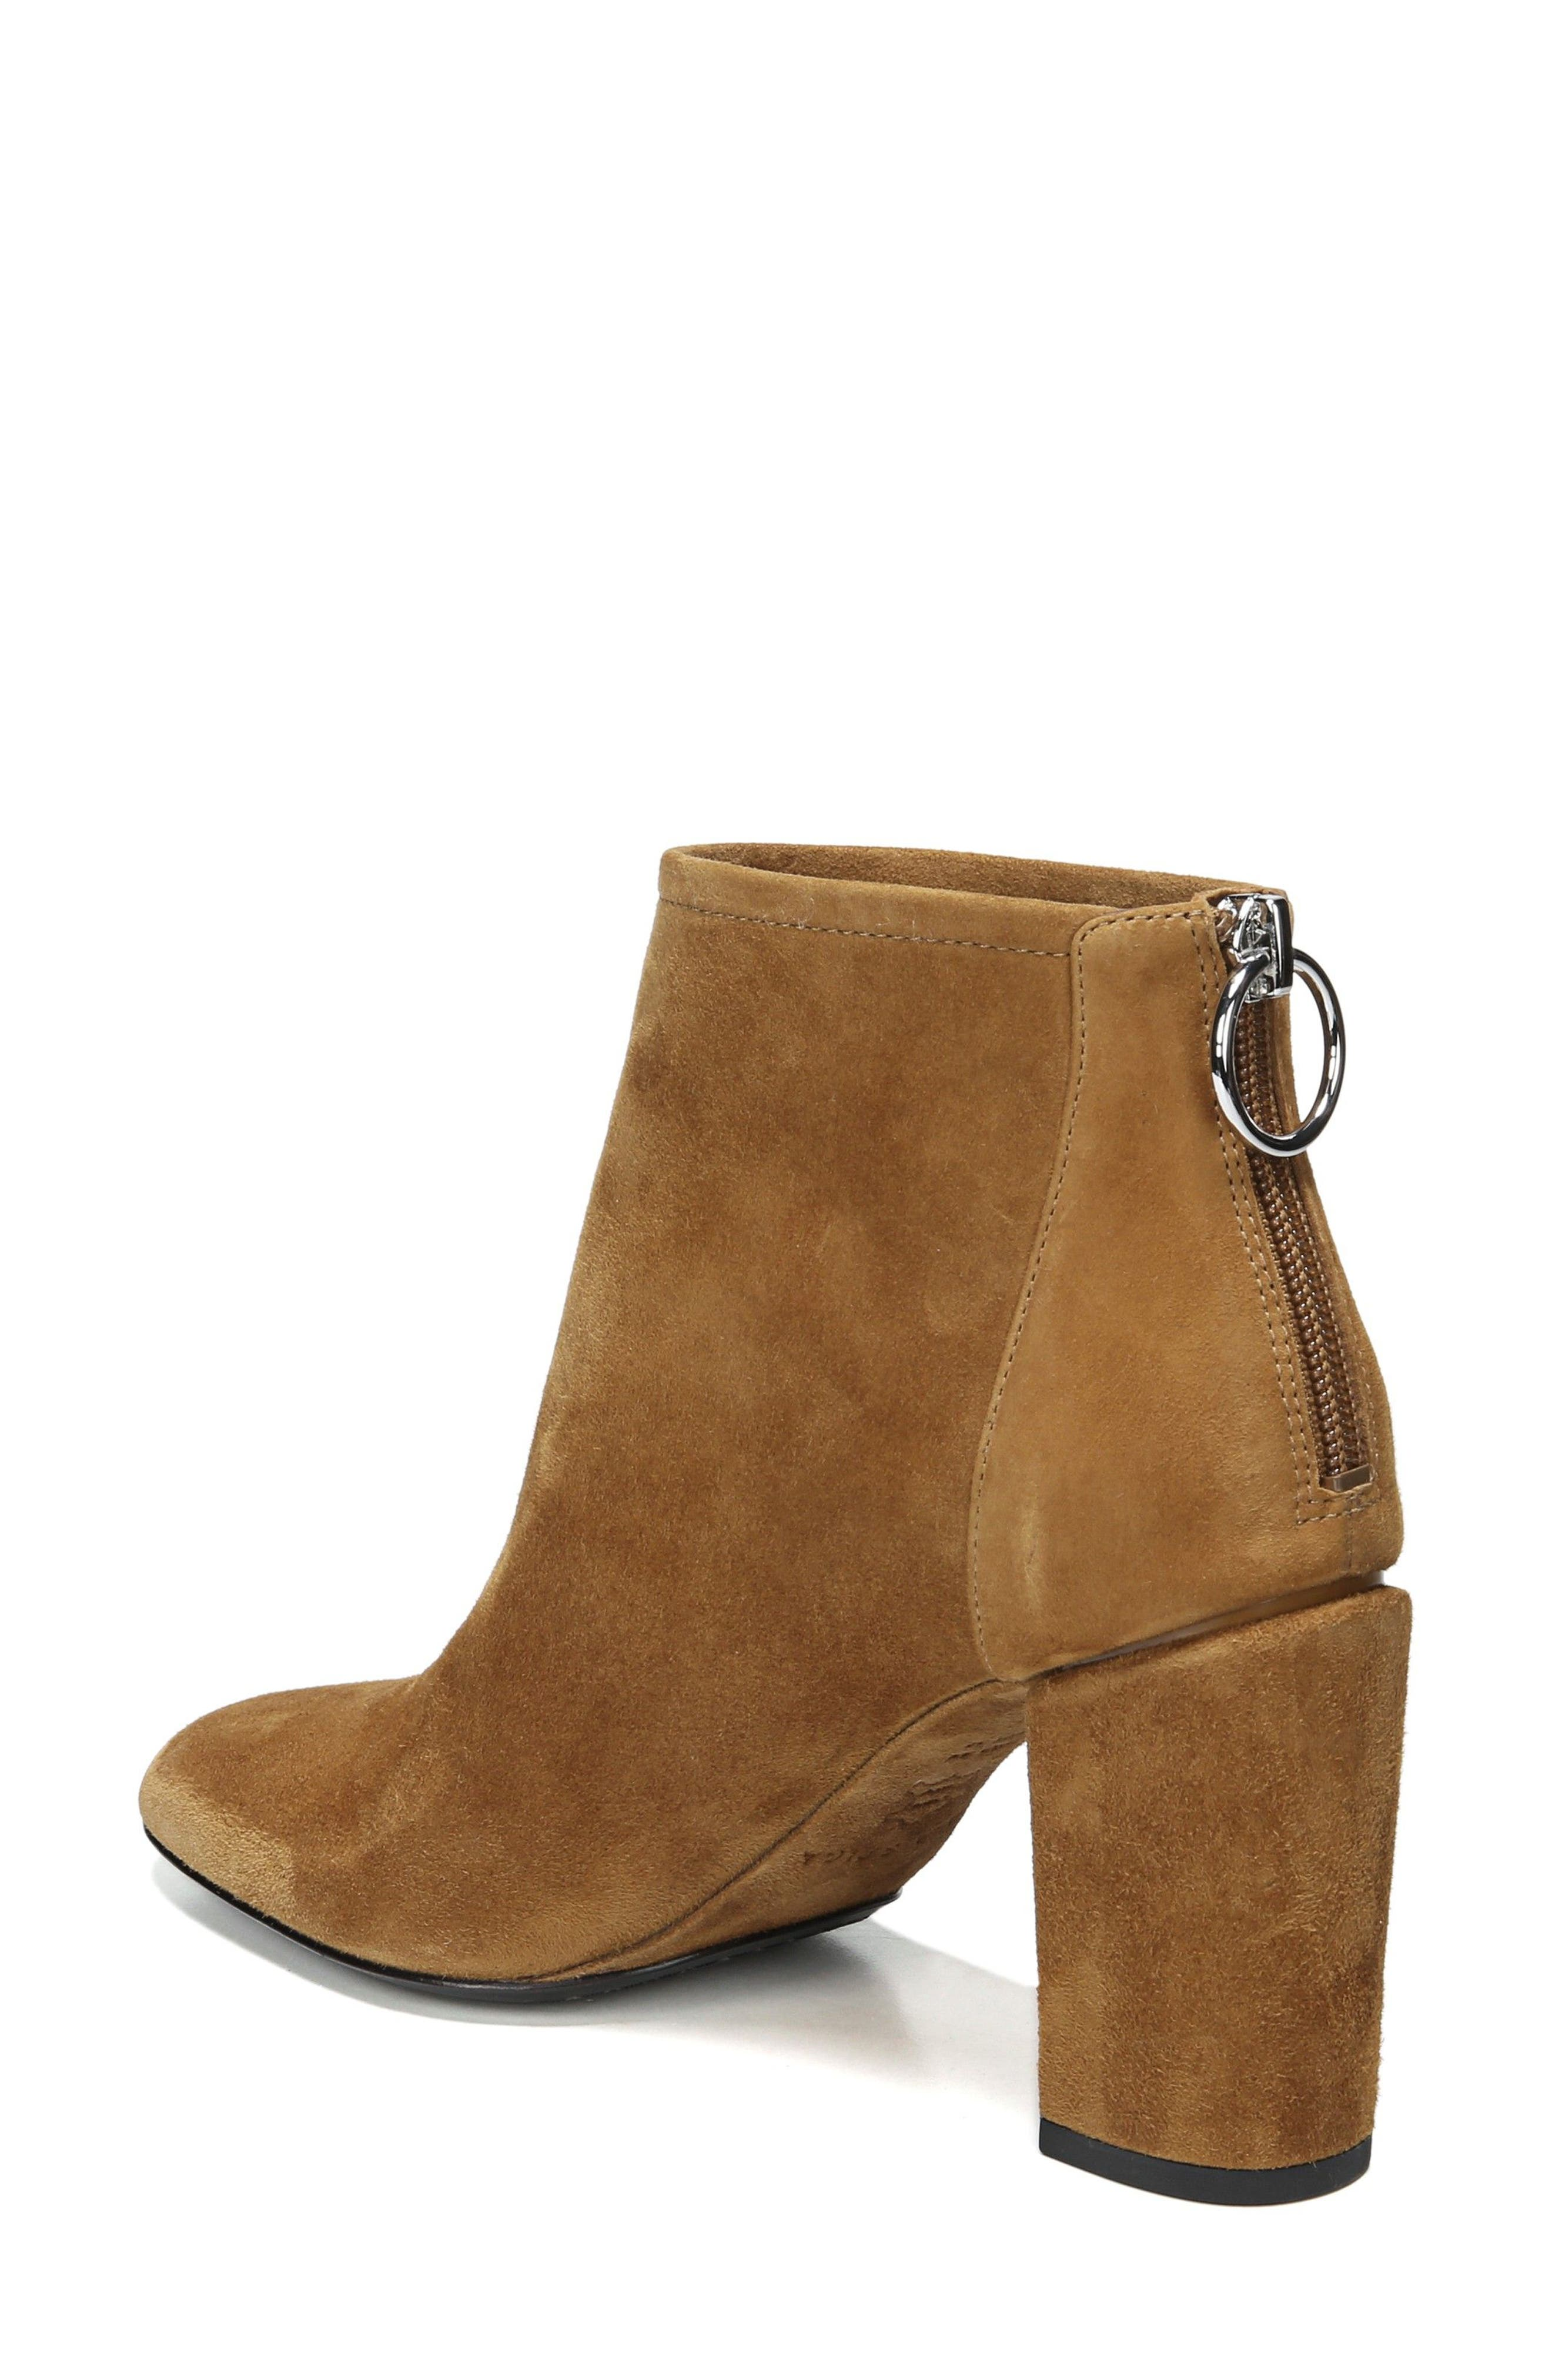 Nadia Bootie,                             Alternate thumbnail 2, color,                             Cuoio Suede